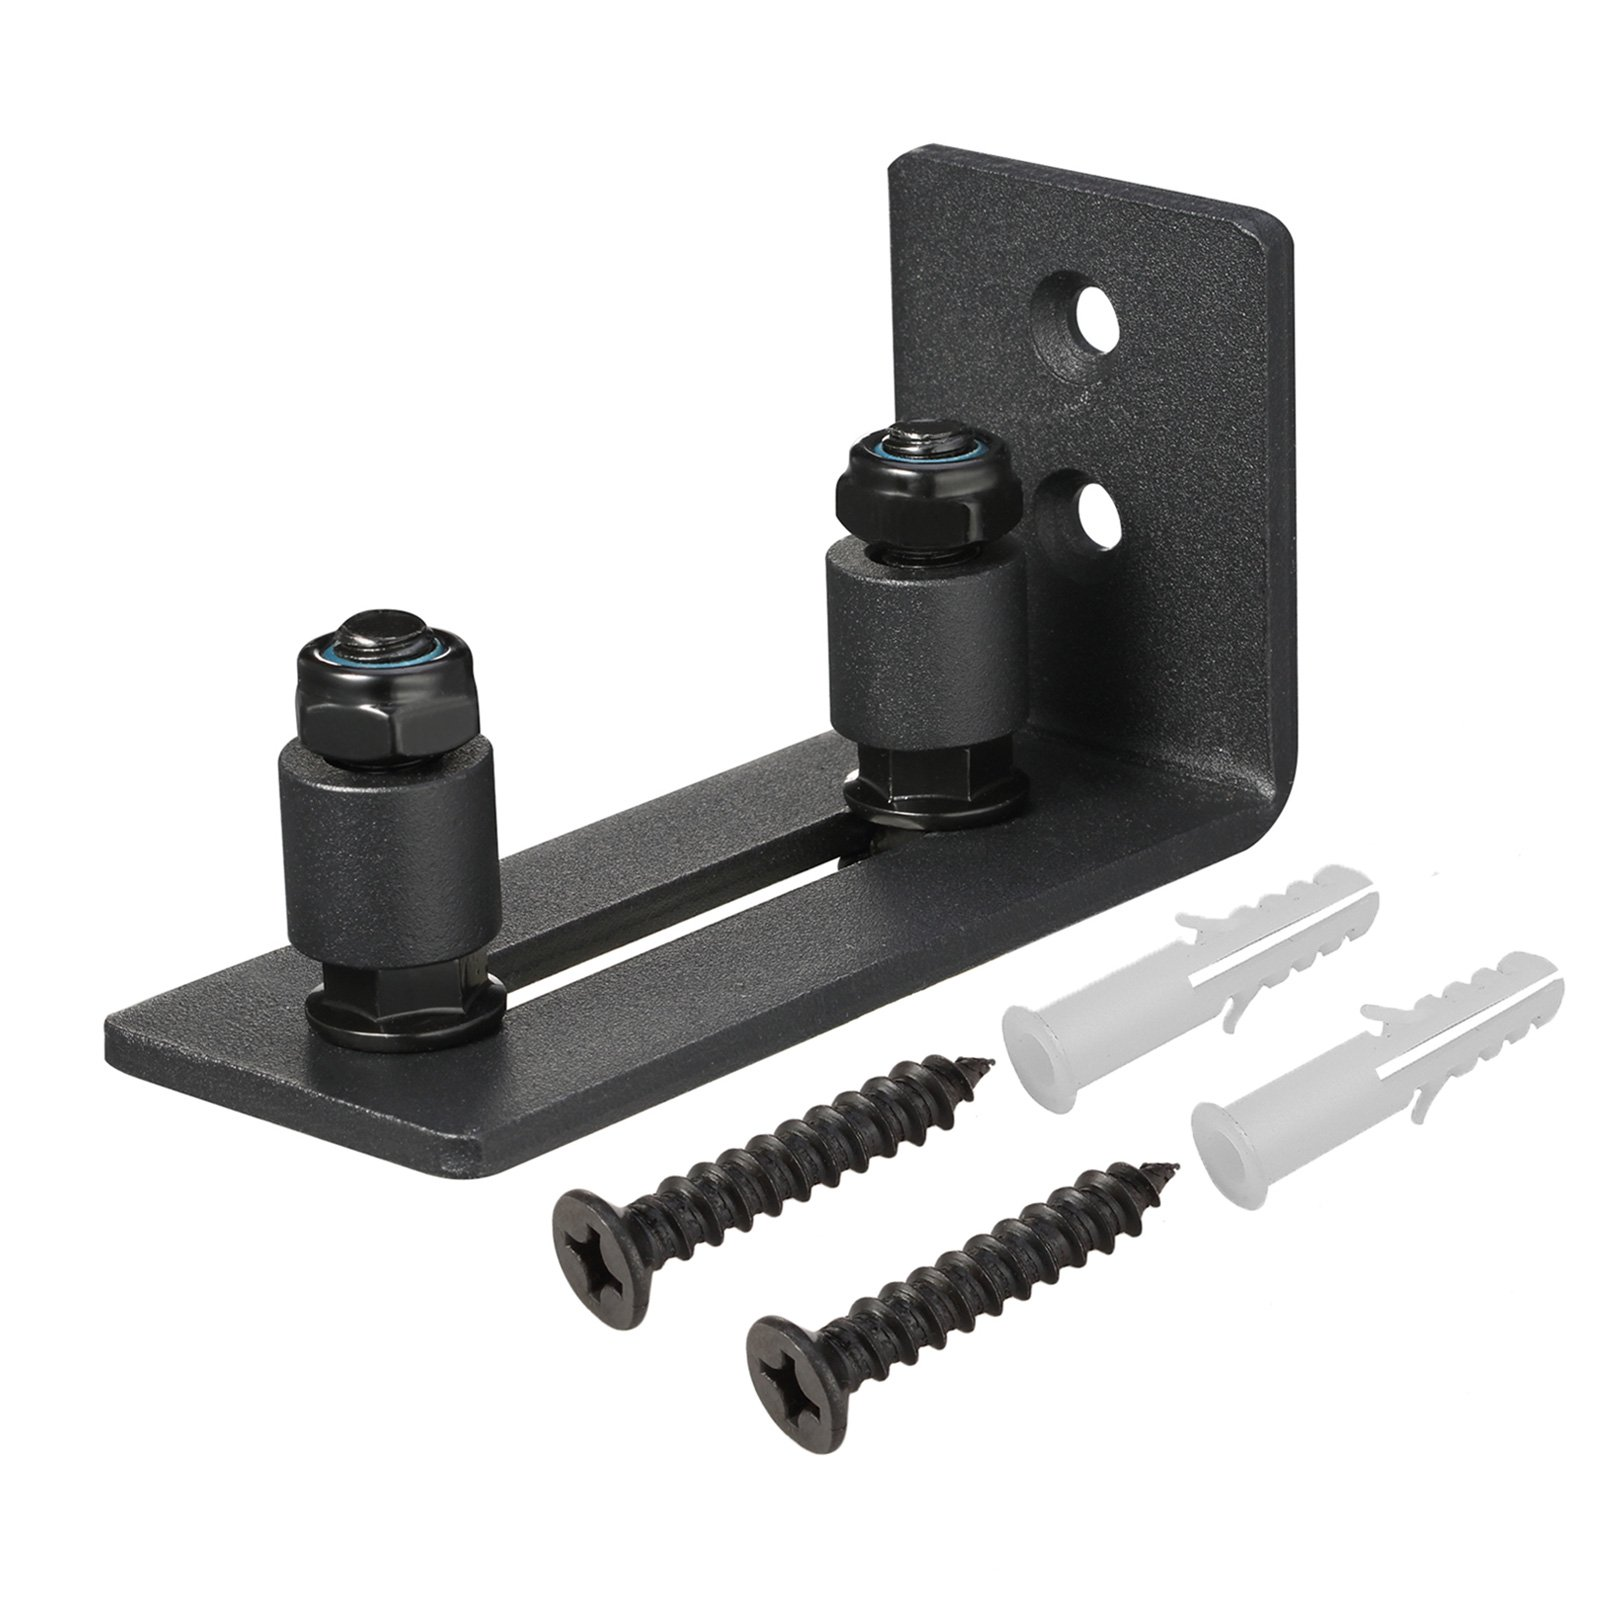 Black Powder Coated Bottom Floor Guide Stay Roller Adjustable Channel for Sliding Barn Door Hardware Wall Mount by Toprema